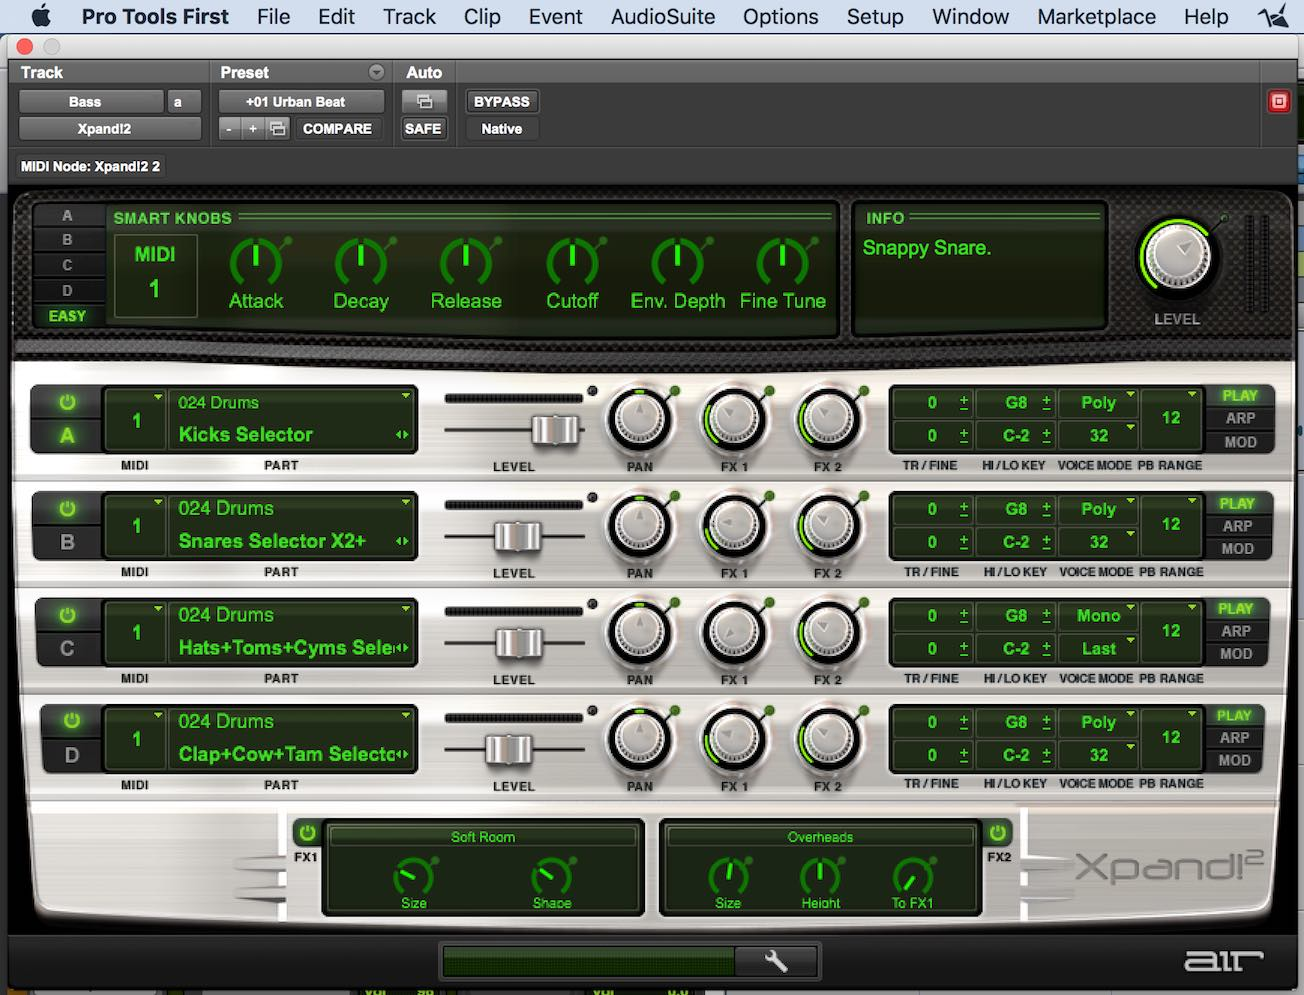 Xpand2 Pro Tools First